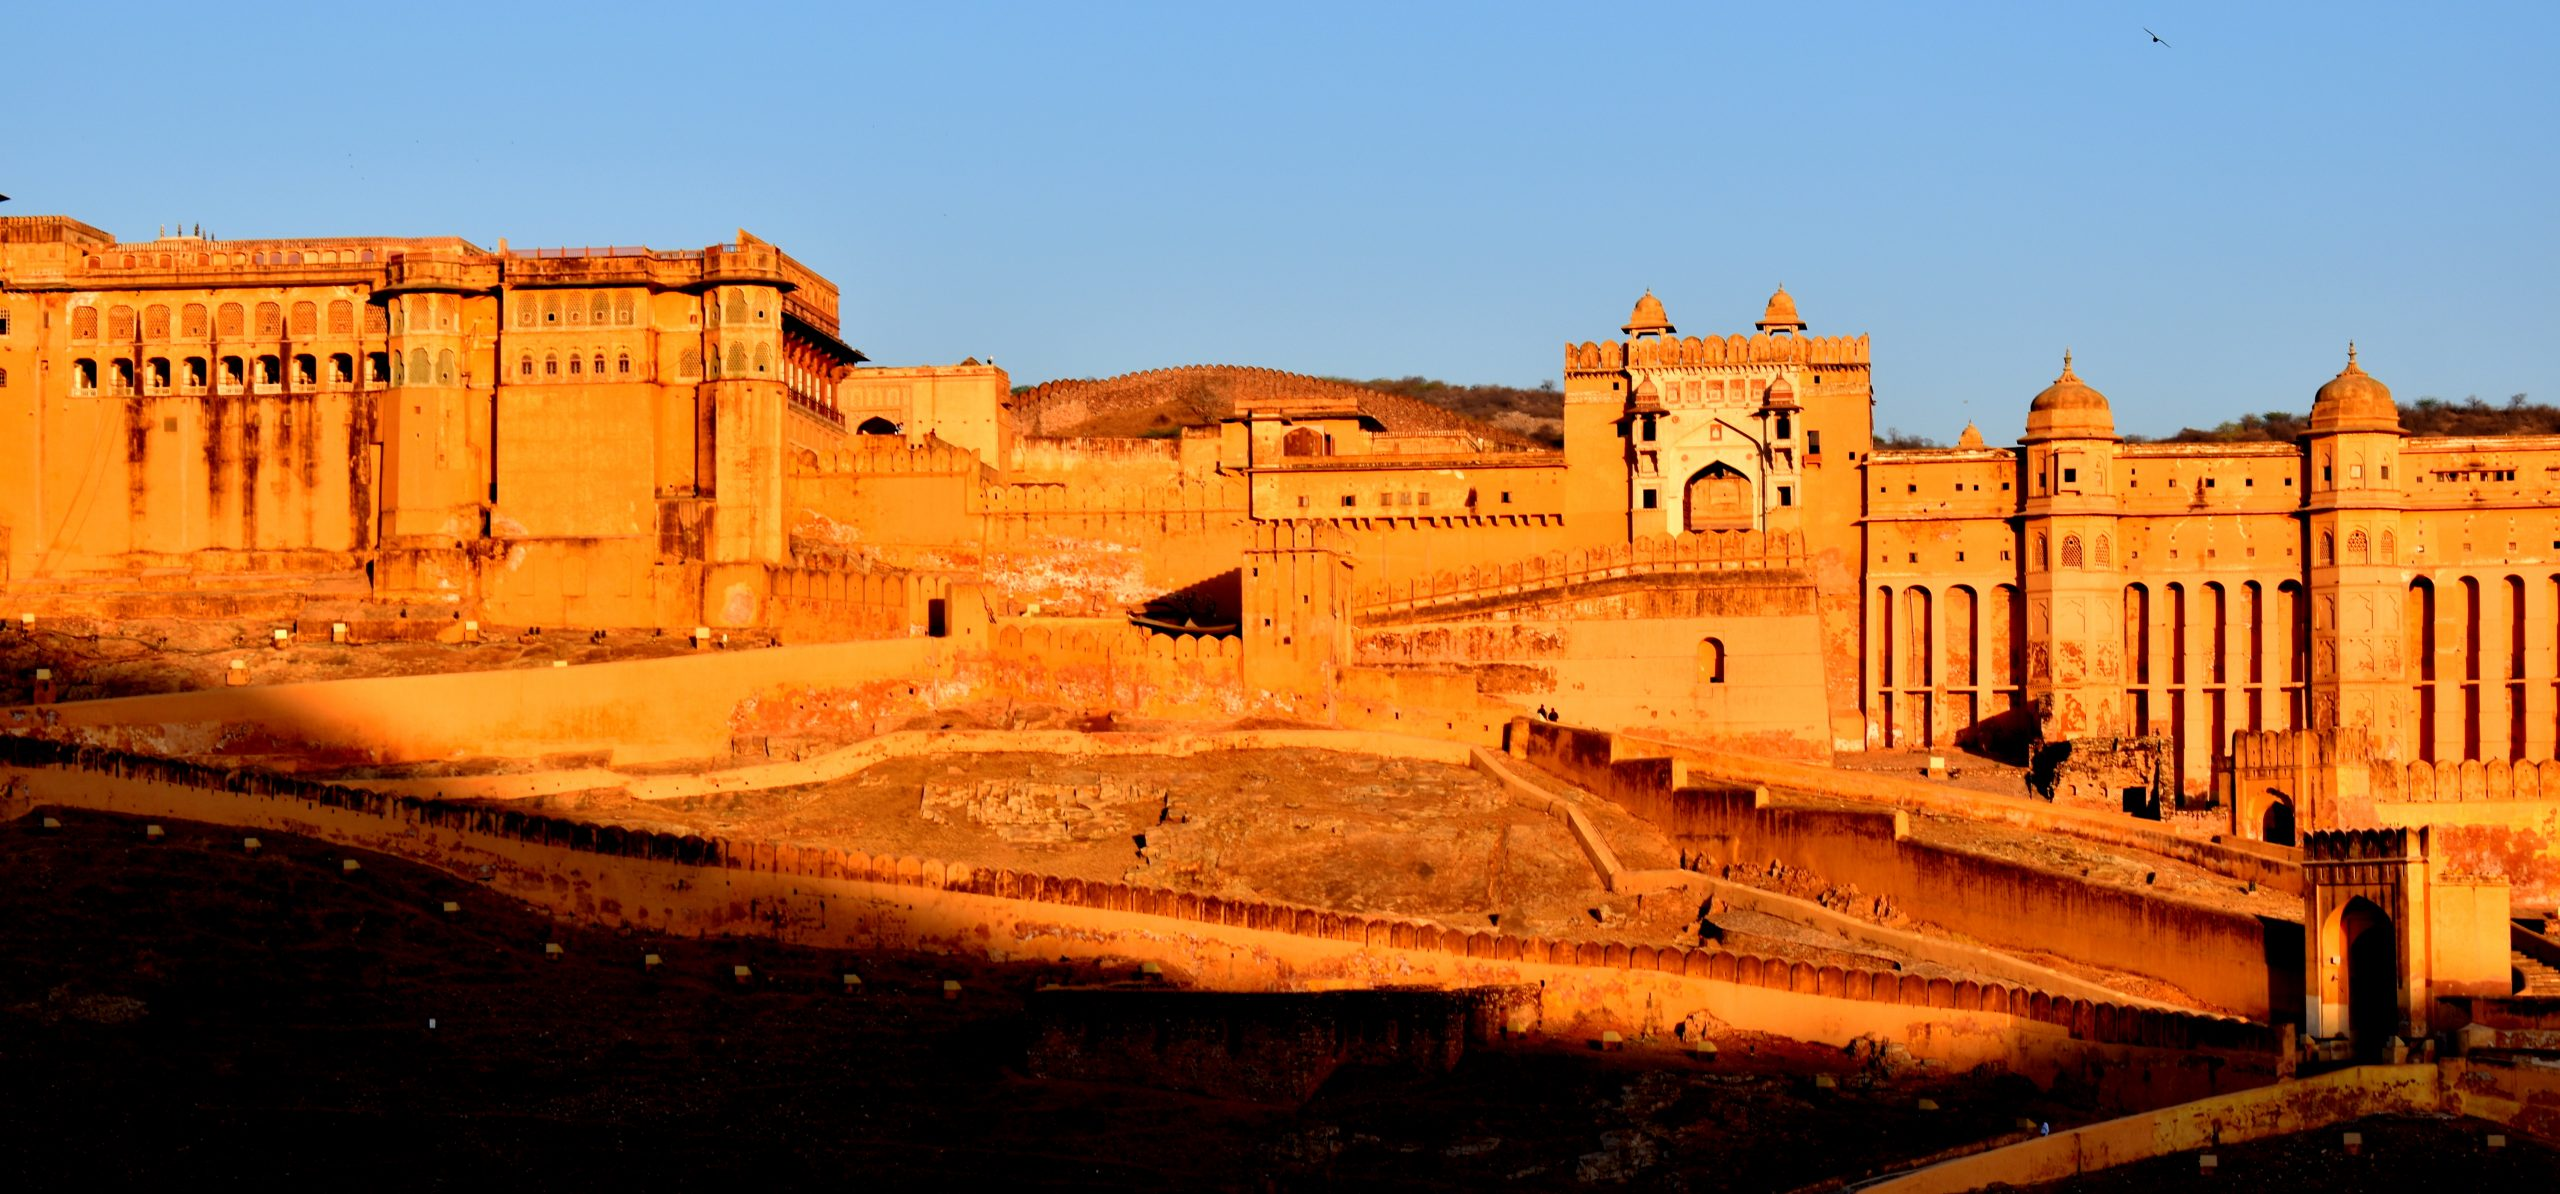 A view of Amer Fort in Jaipur